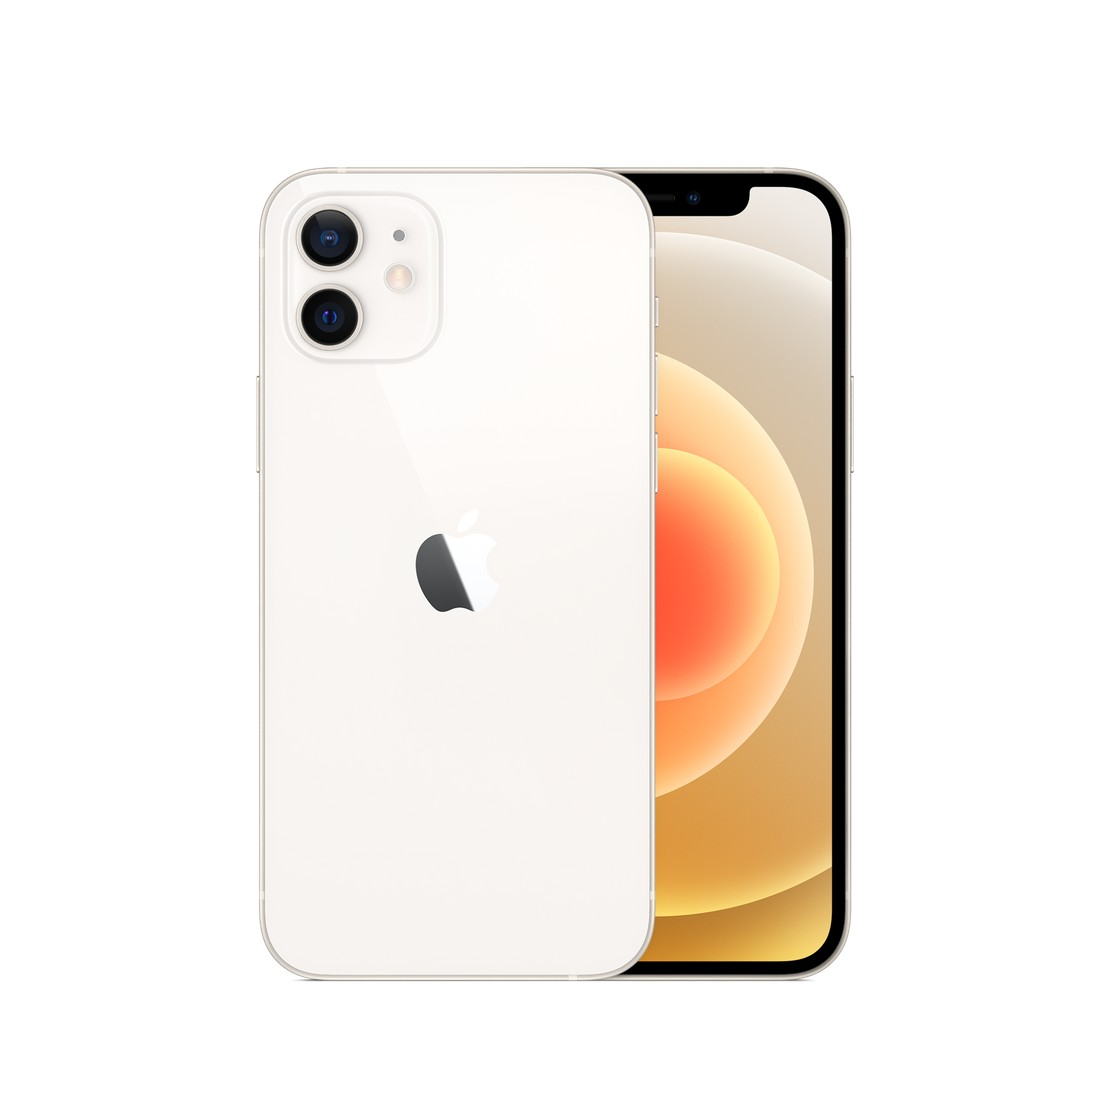 Apple iPhone 12 128GB Bianco